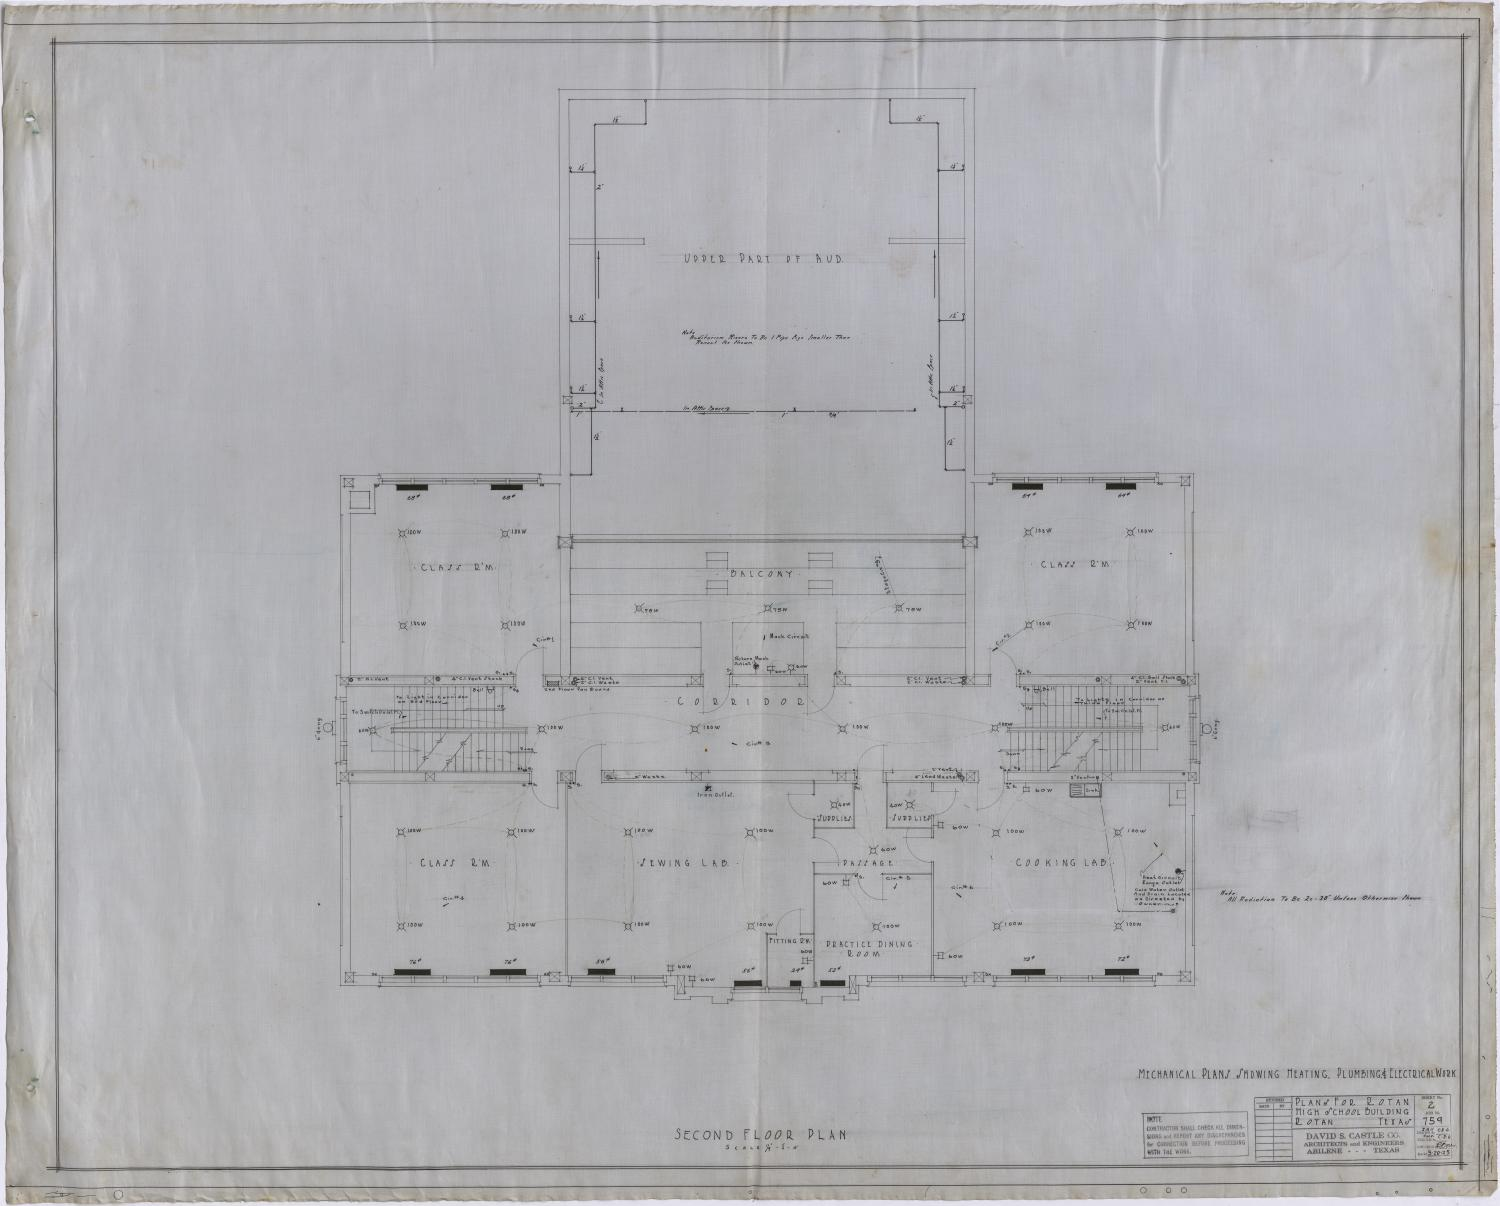 High School Building, Rotan, Texas: Second Floor Mechanical Plan                                                                                                      [Sequence #]: 1 of 2